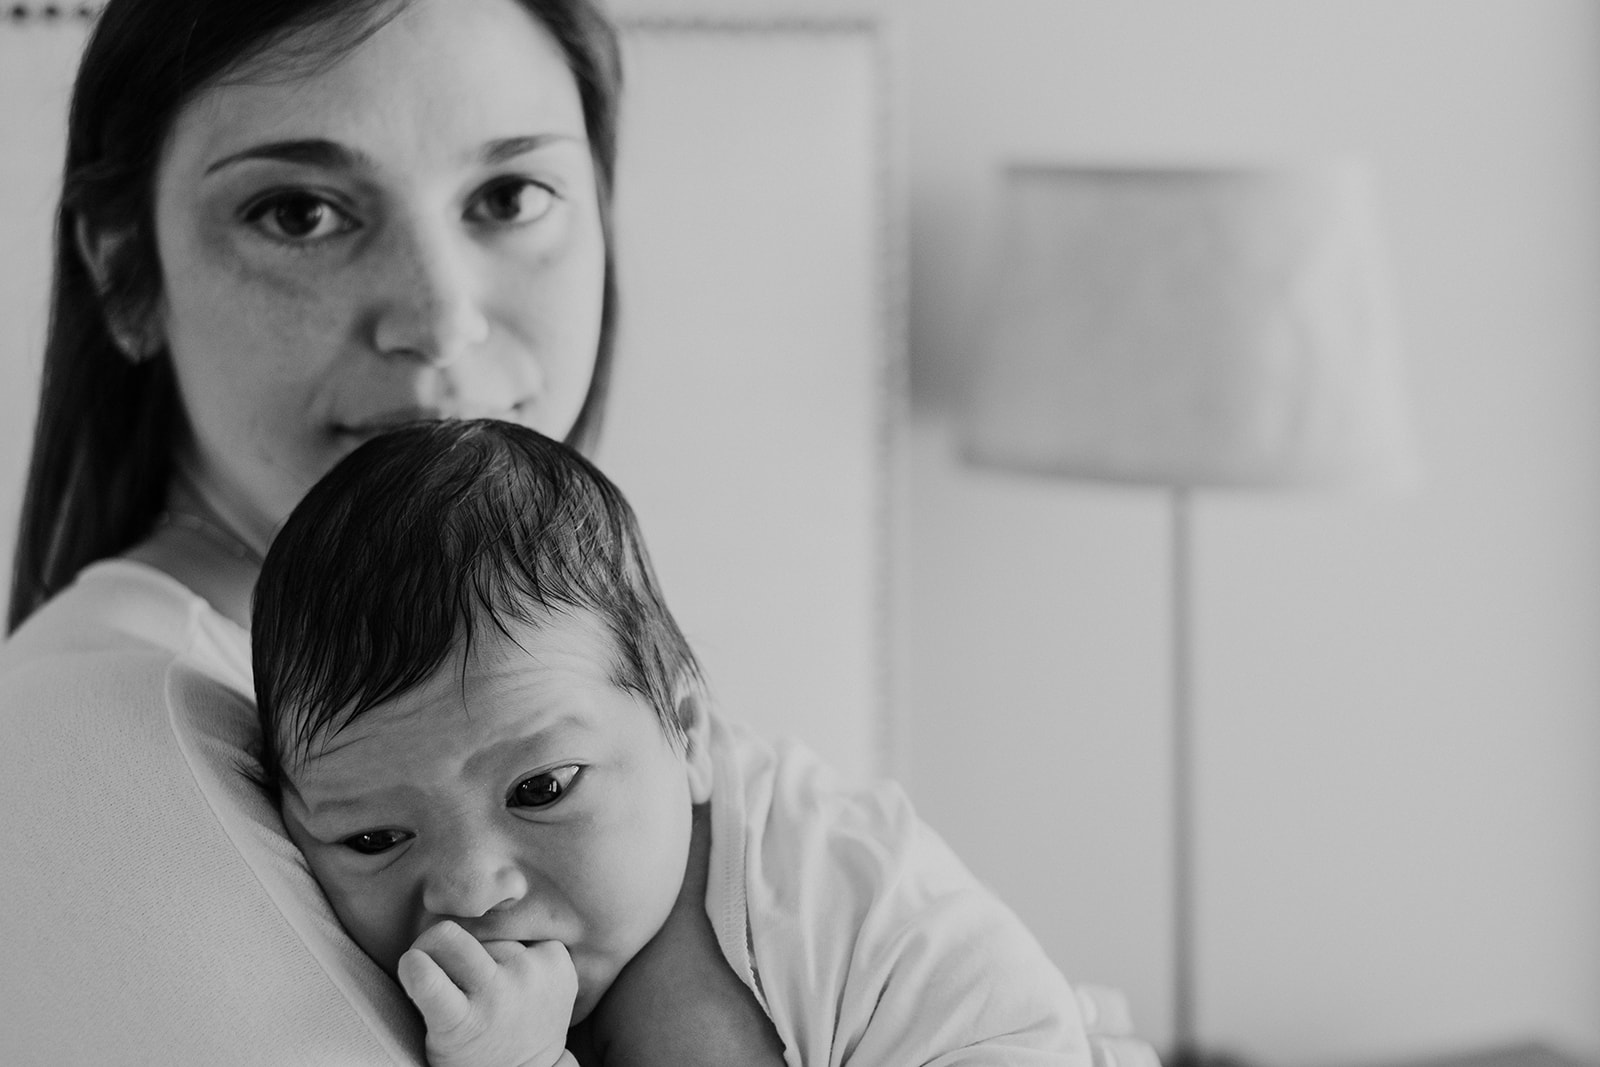 A mother holds her son after nursing him during and in home family photography session.